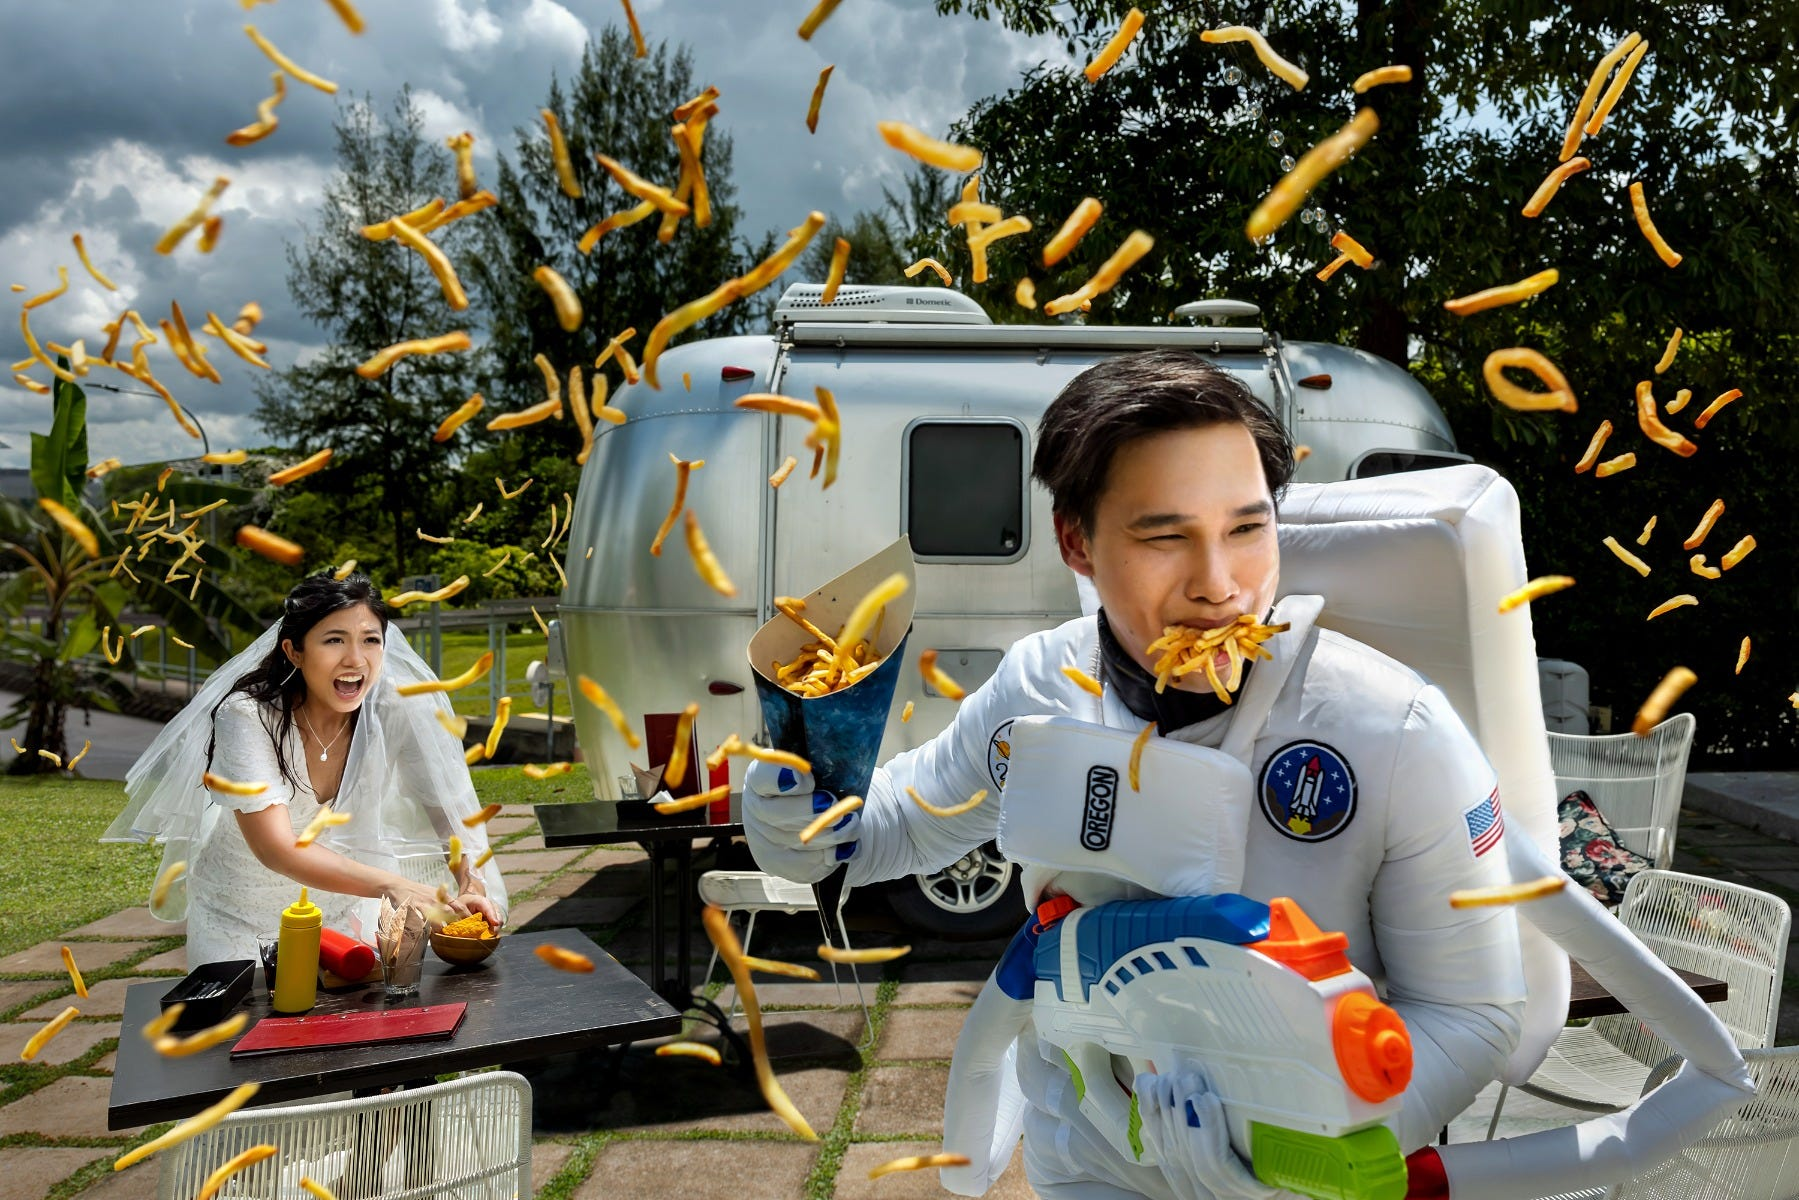 Wedding couple throws French fries in a dramatic pre-wedding photoshoot.]